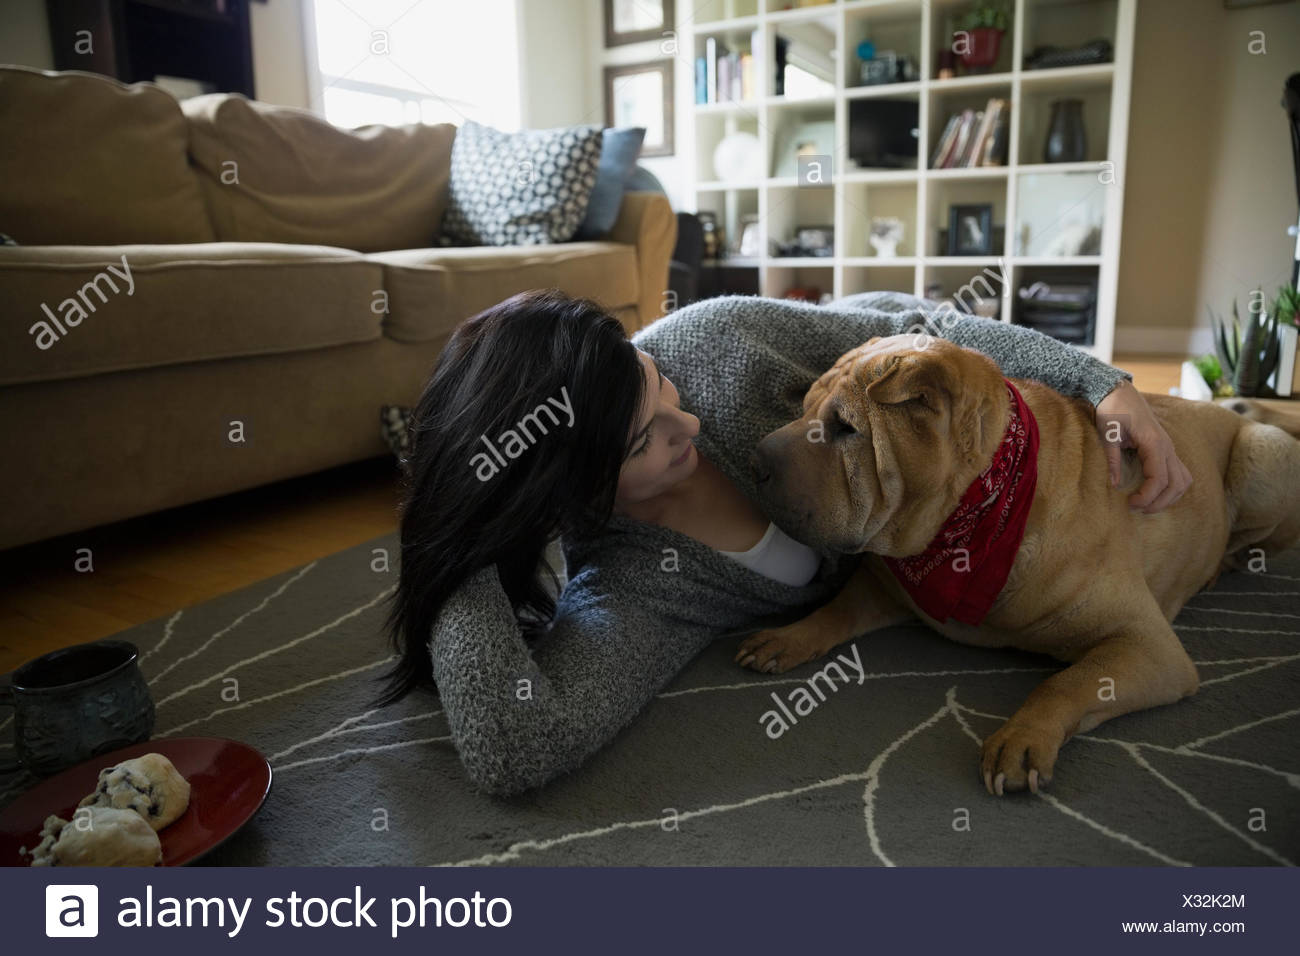 Woman and dog laying face to face floor - Stock Image